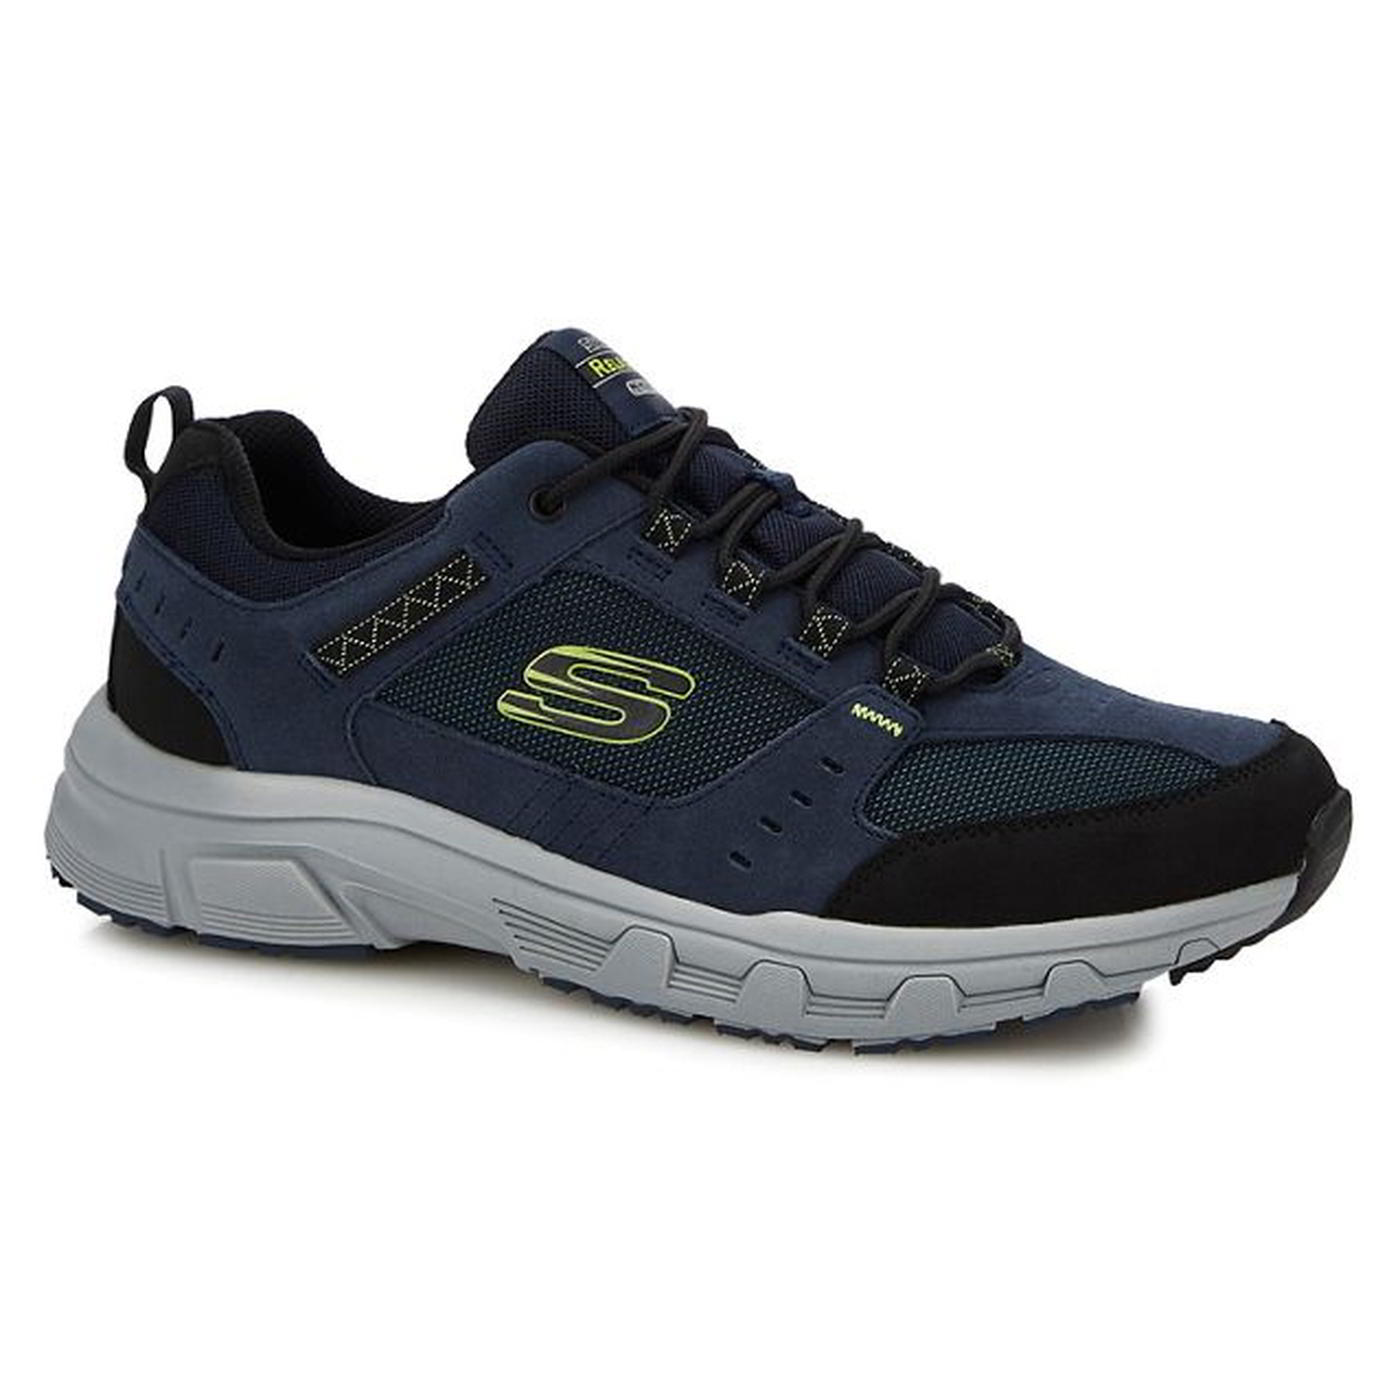 a41d8b15d24 Details about Skechers Oak Canyon Mens Relaxed Fit Lace Up Shoes Trainers  Size 8-13